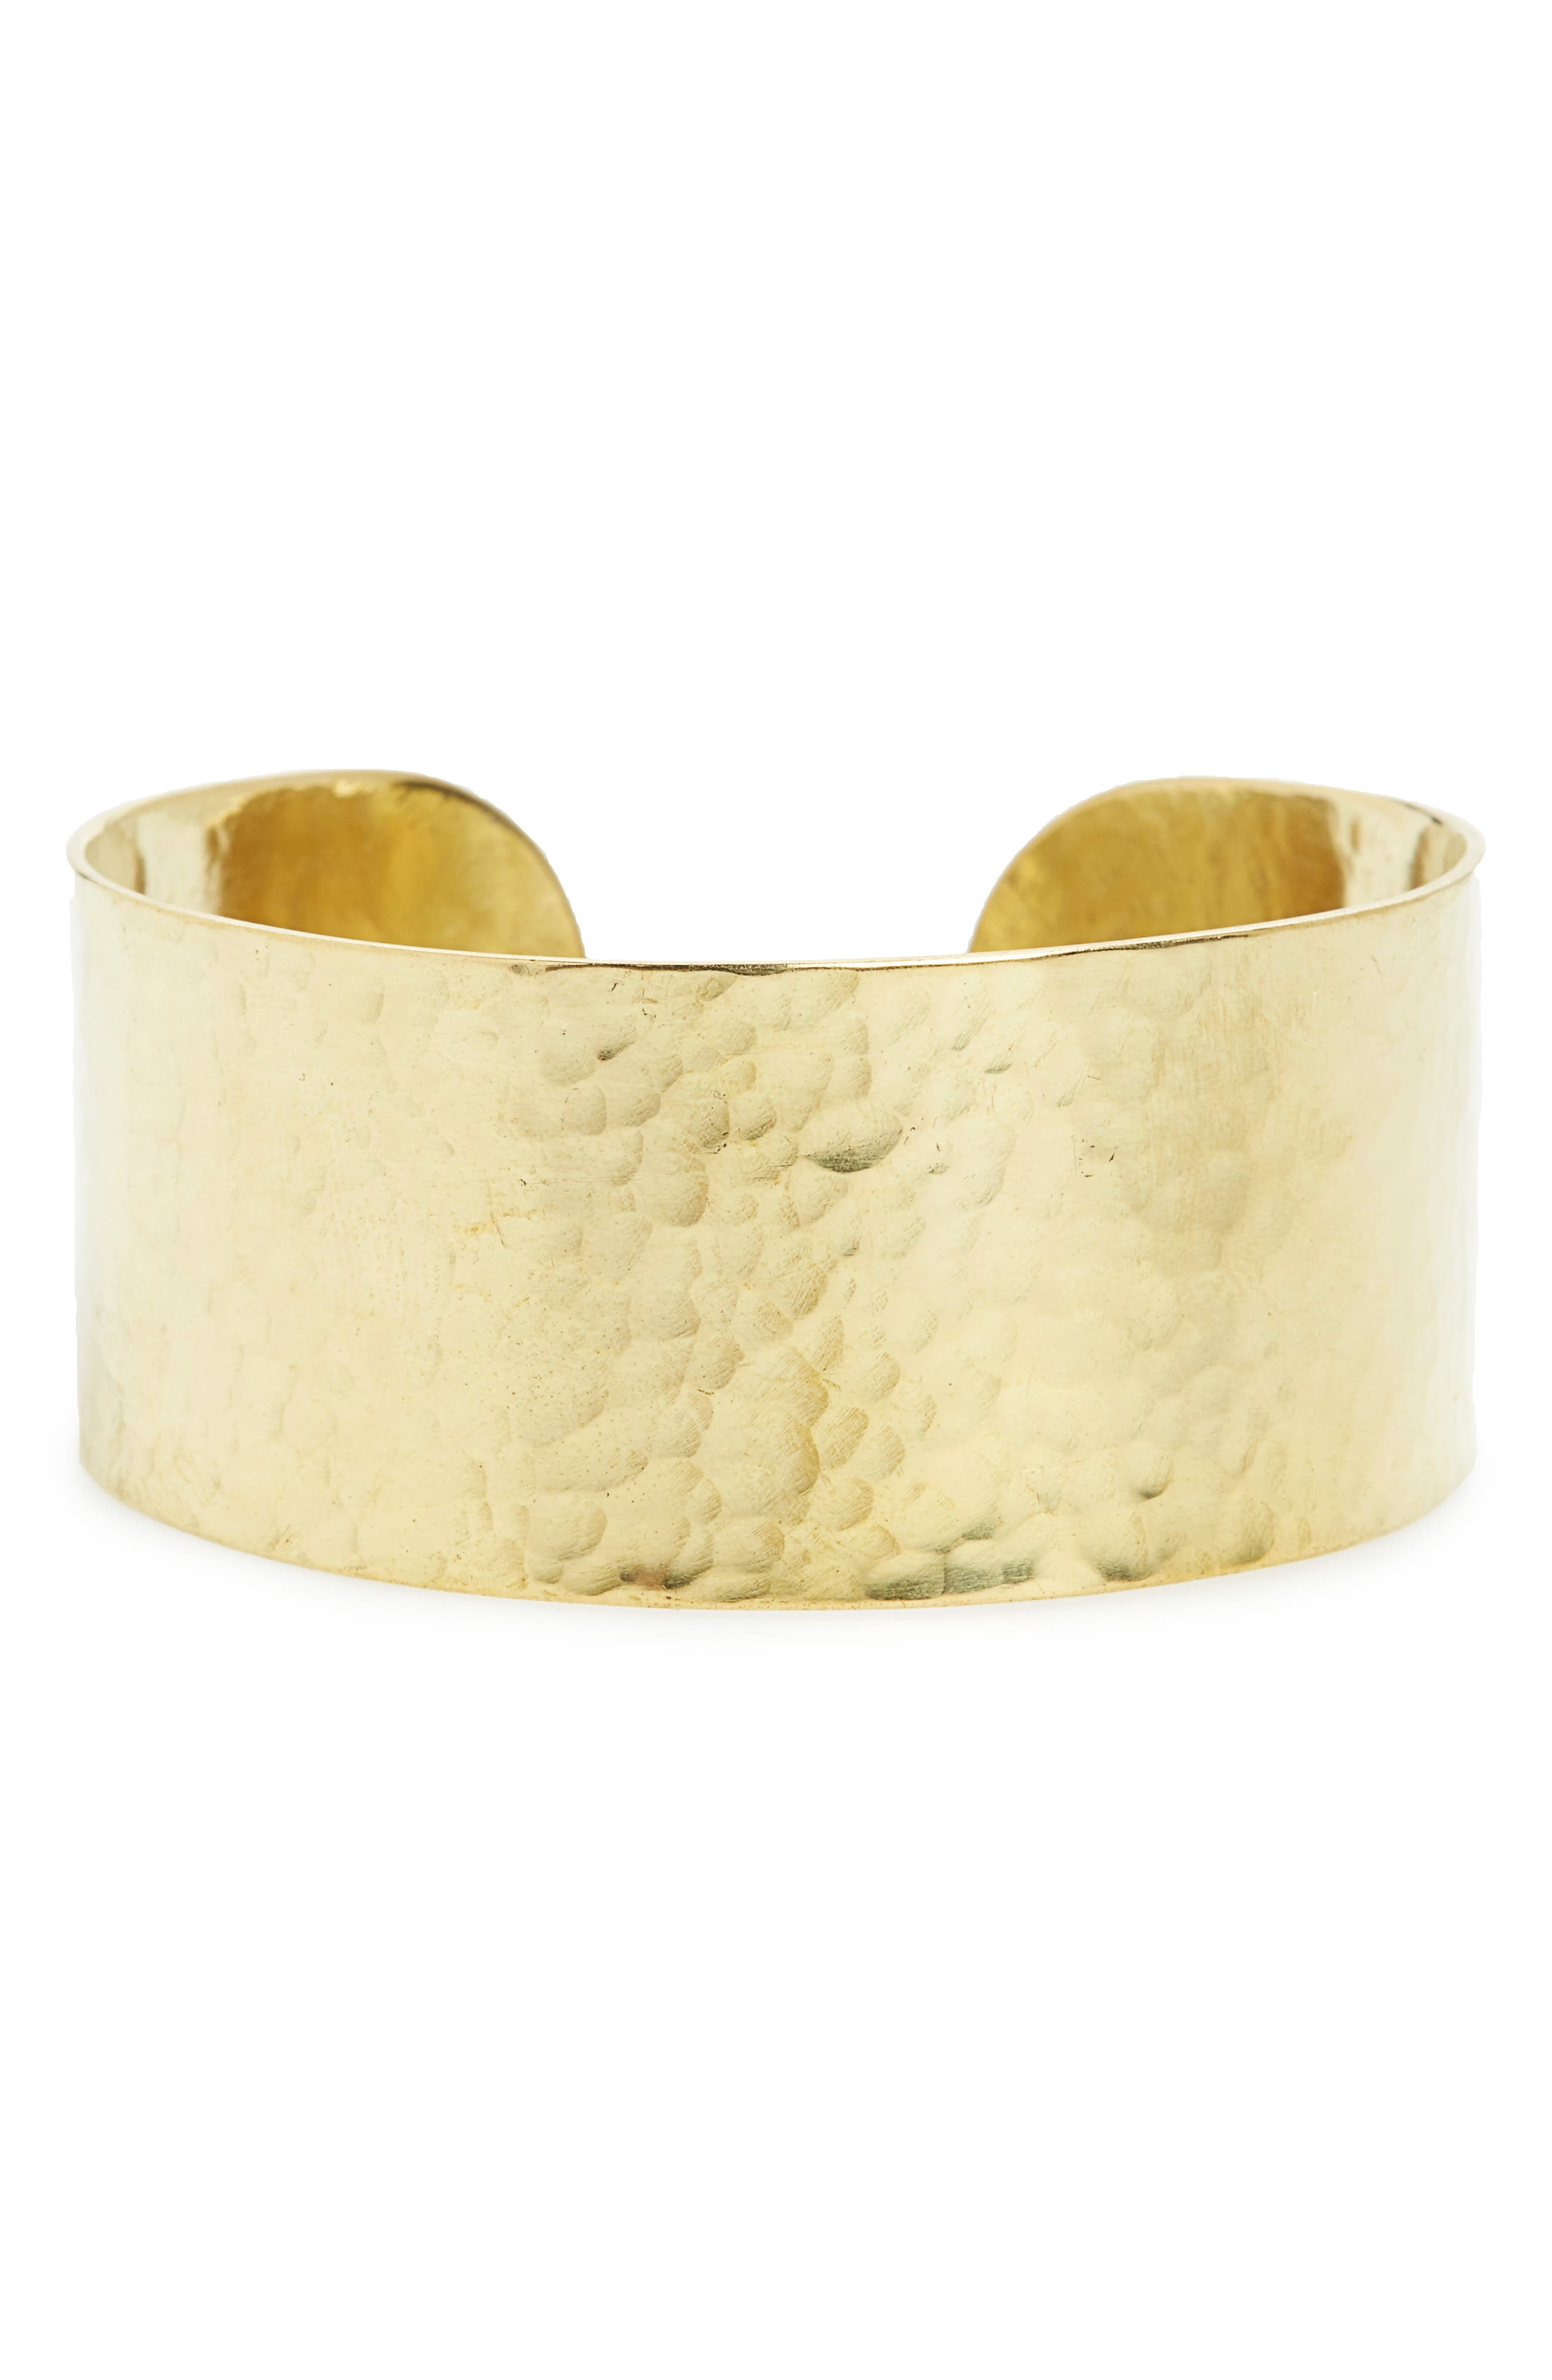 Alternate Image 1 Selected - Me to We Hammered Brass Cuff